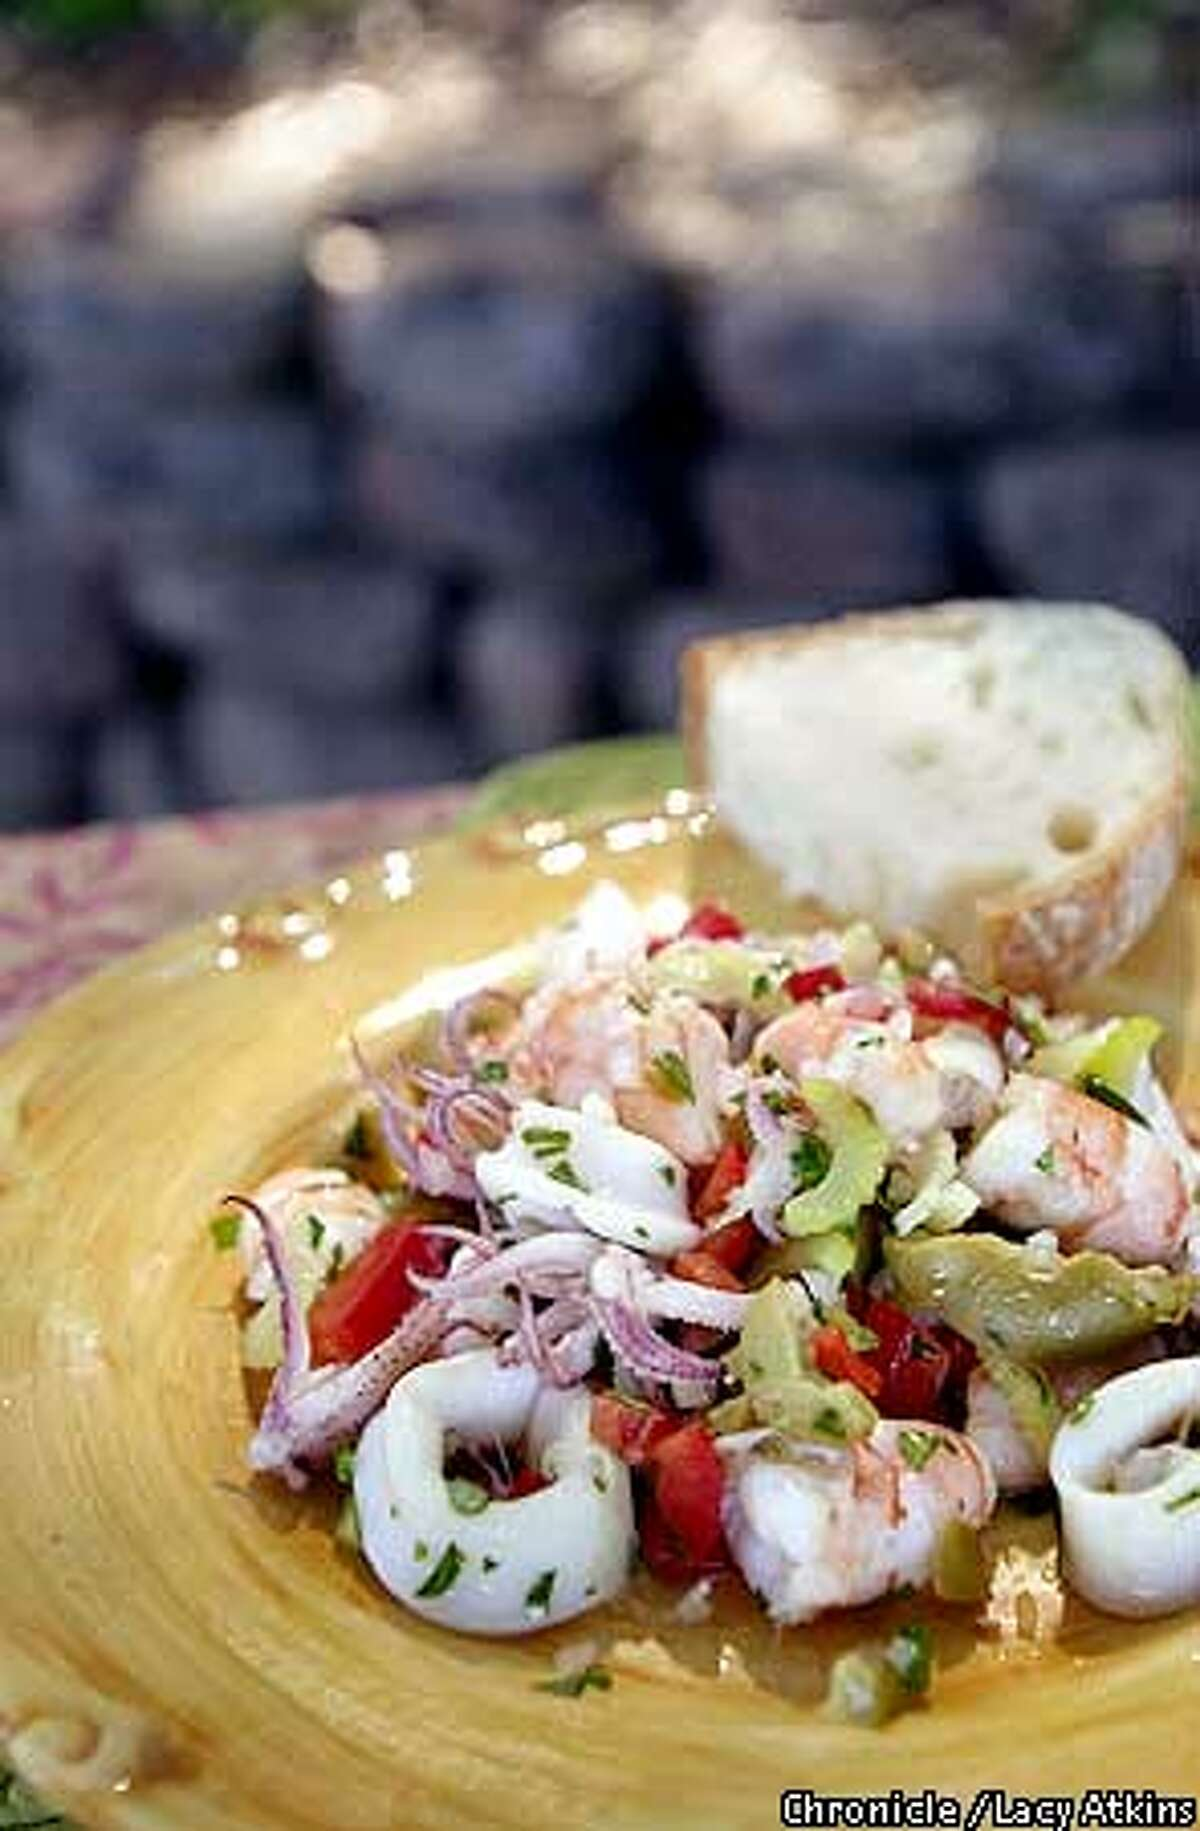 An Italian mixed seafood salad appetizer, often with shrimp and squid, make refreshing additions to any outdoor menu.